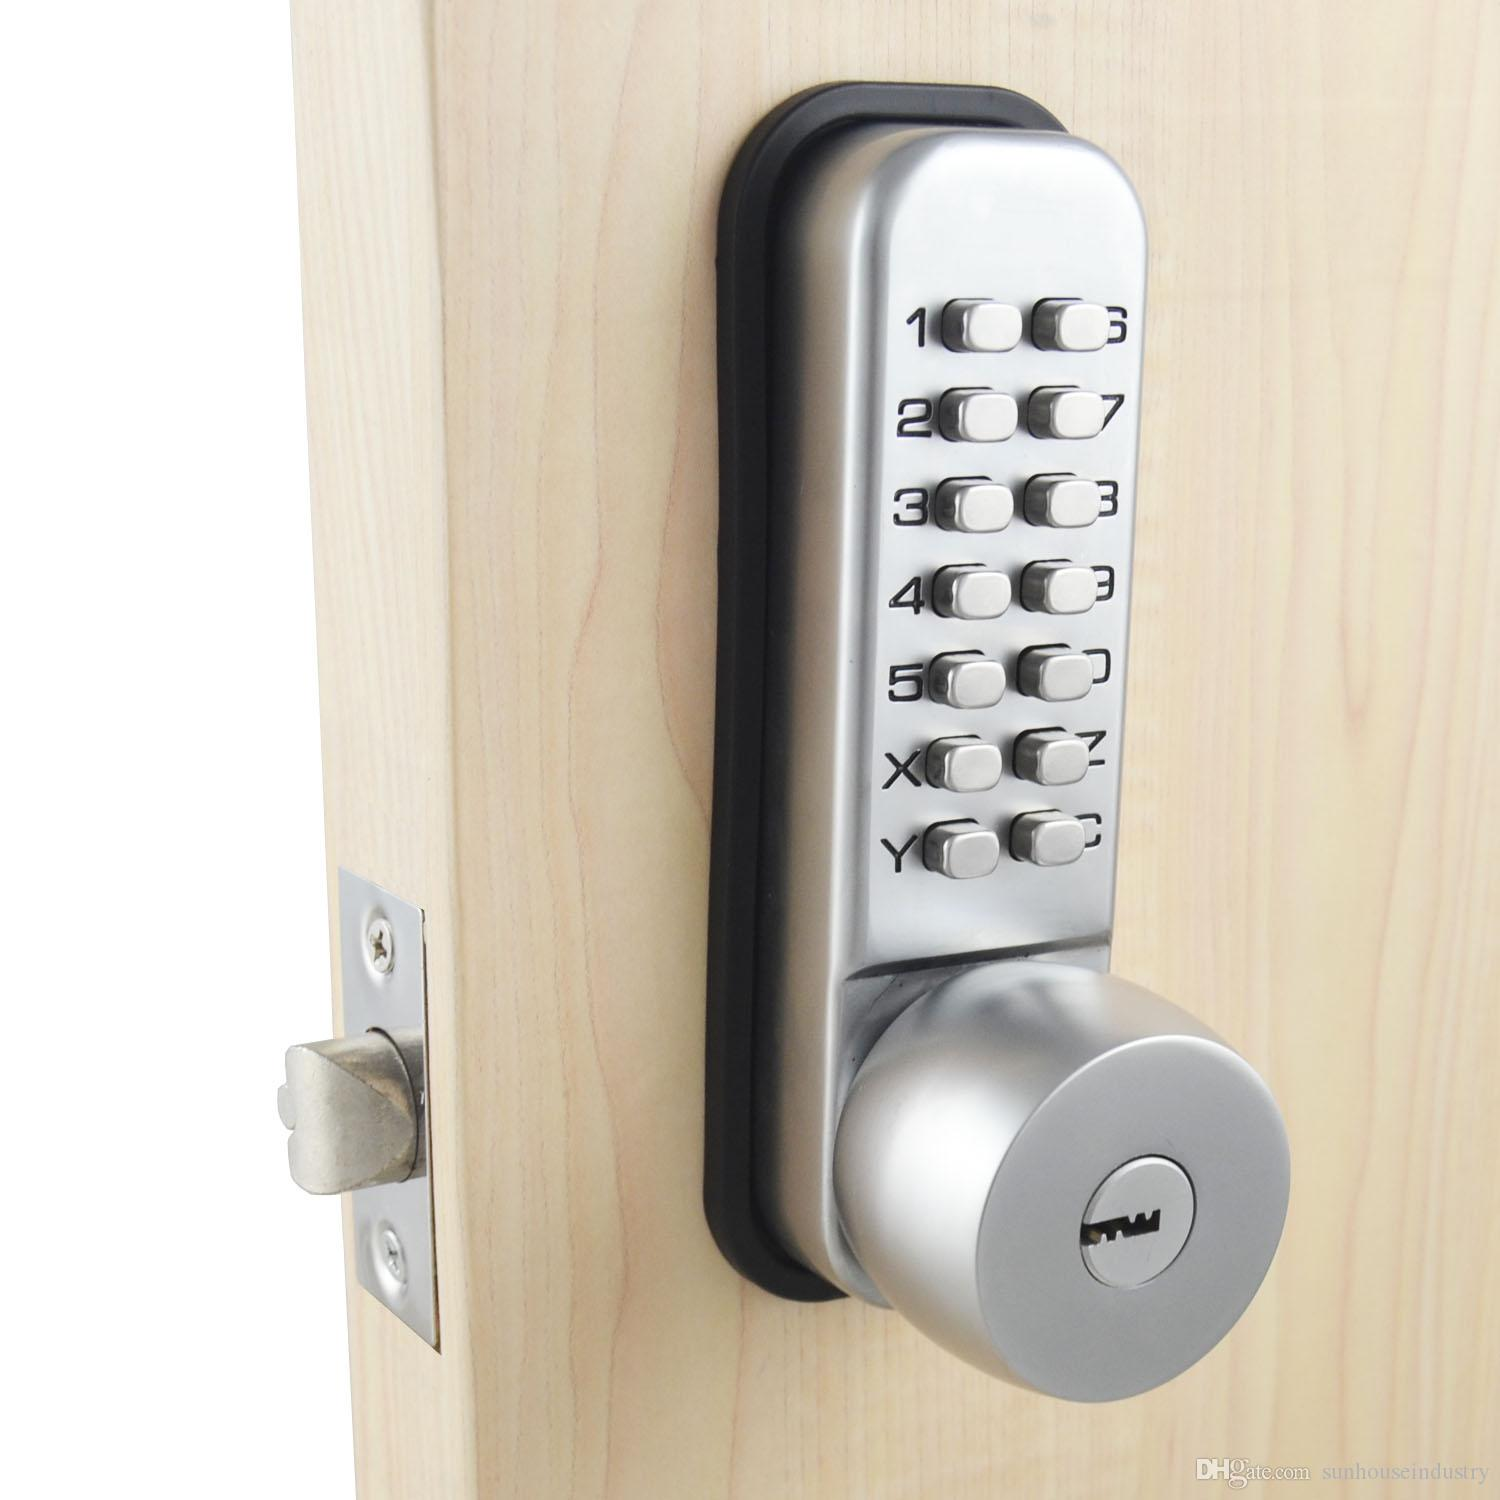 2018 mechanical password door lock,bedroom code locks with 3 keys